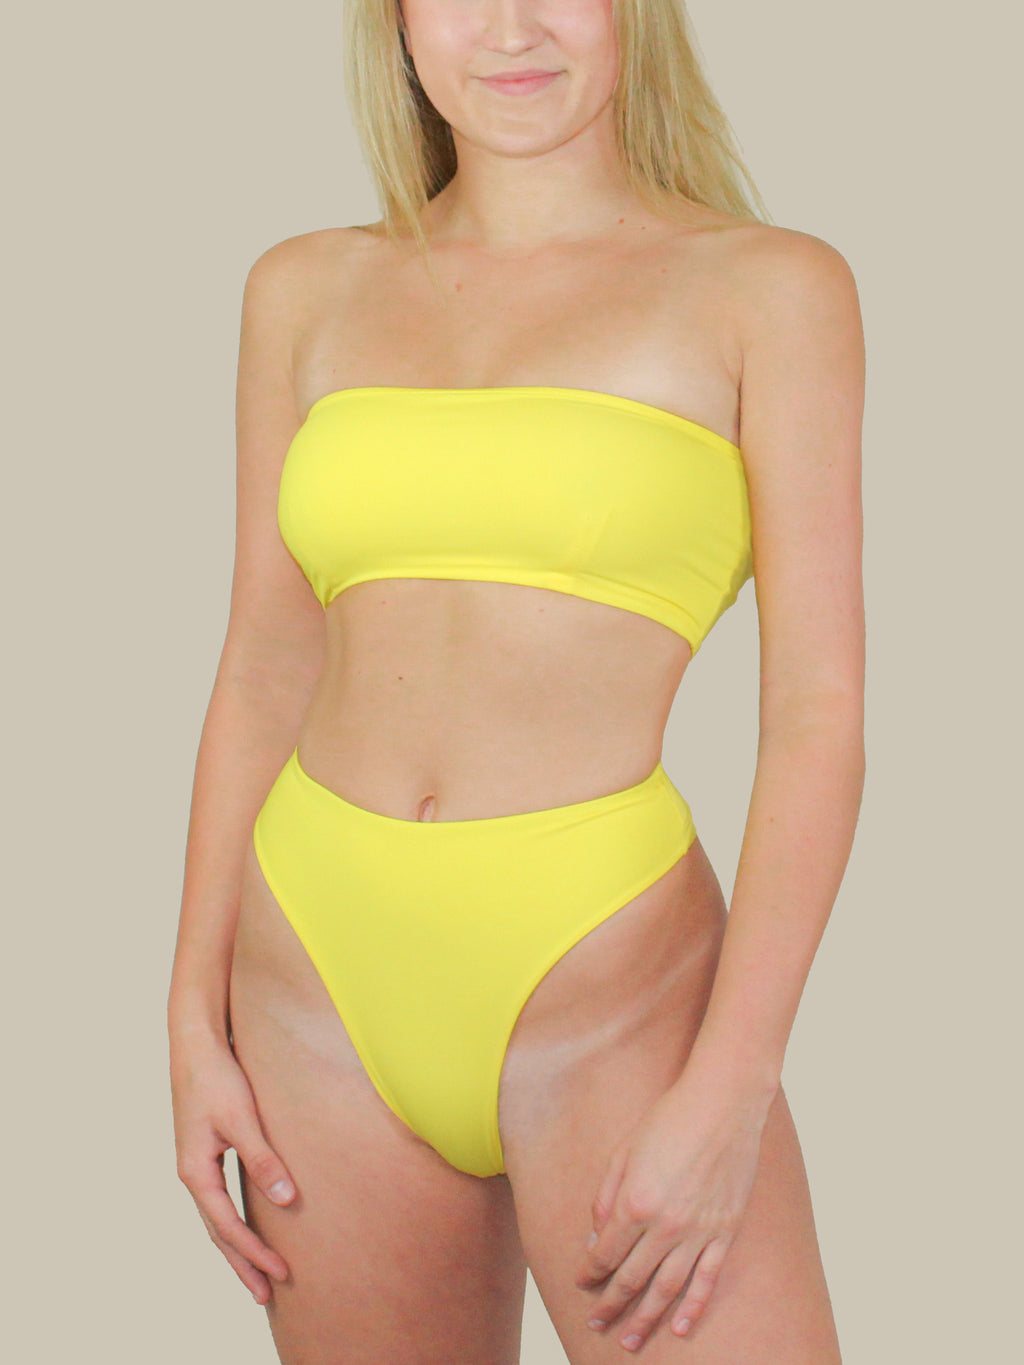 437 Swimwear The Aubrey Top (Yellow)